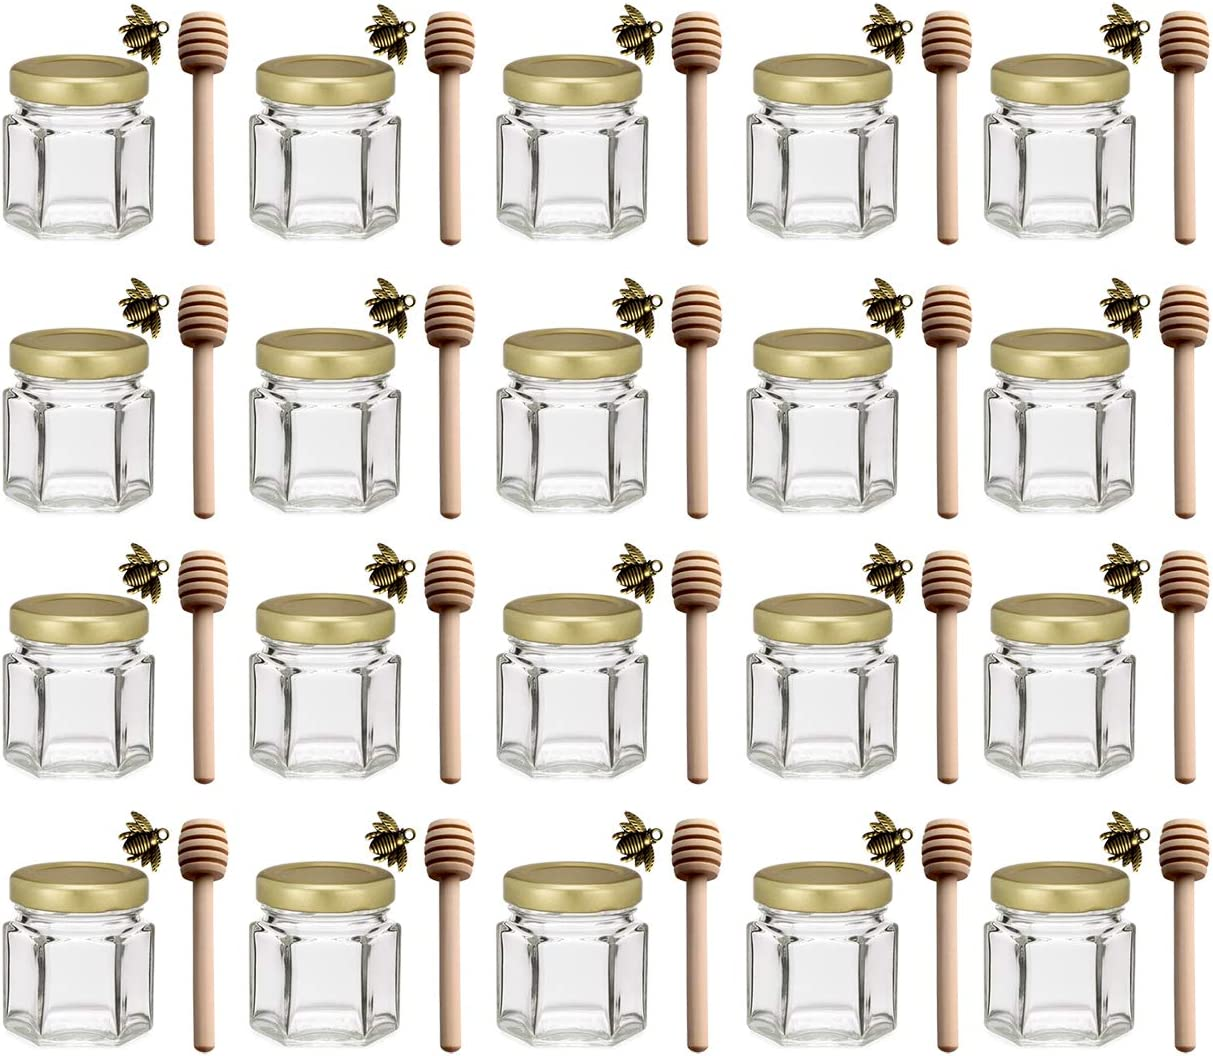 1.5 oz Hexagon Mini Glass Honey Jars with Wood Dipper, Gold Lid, 20 pack